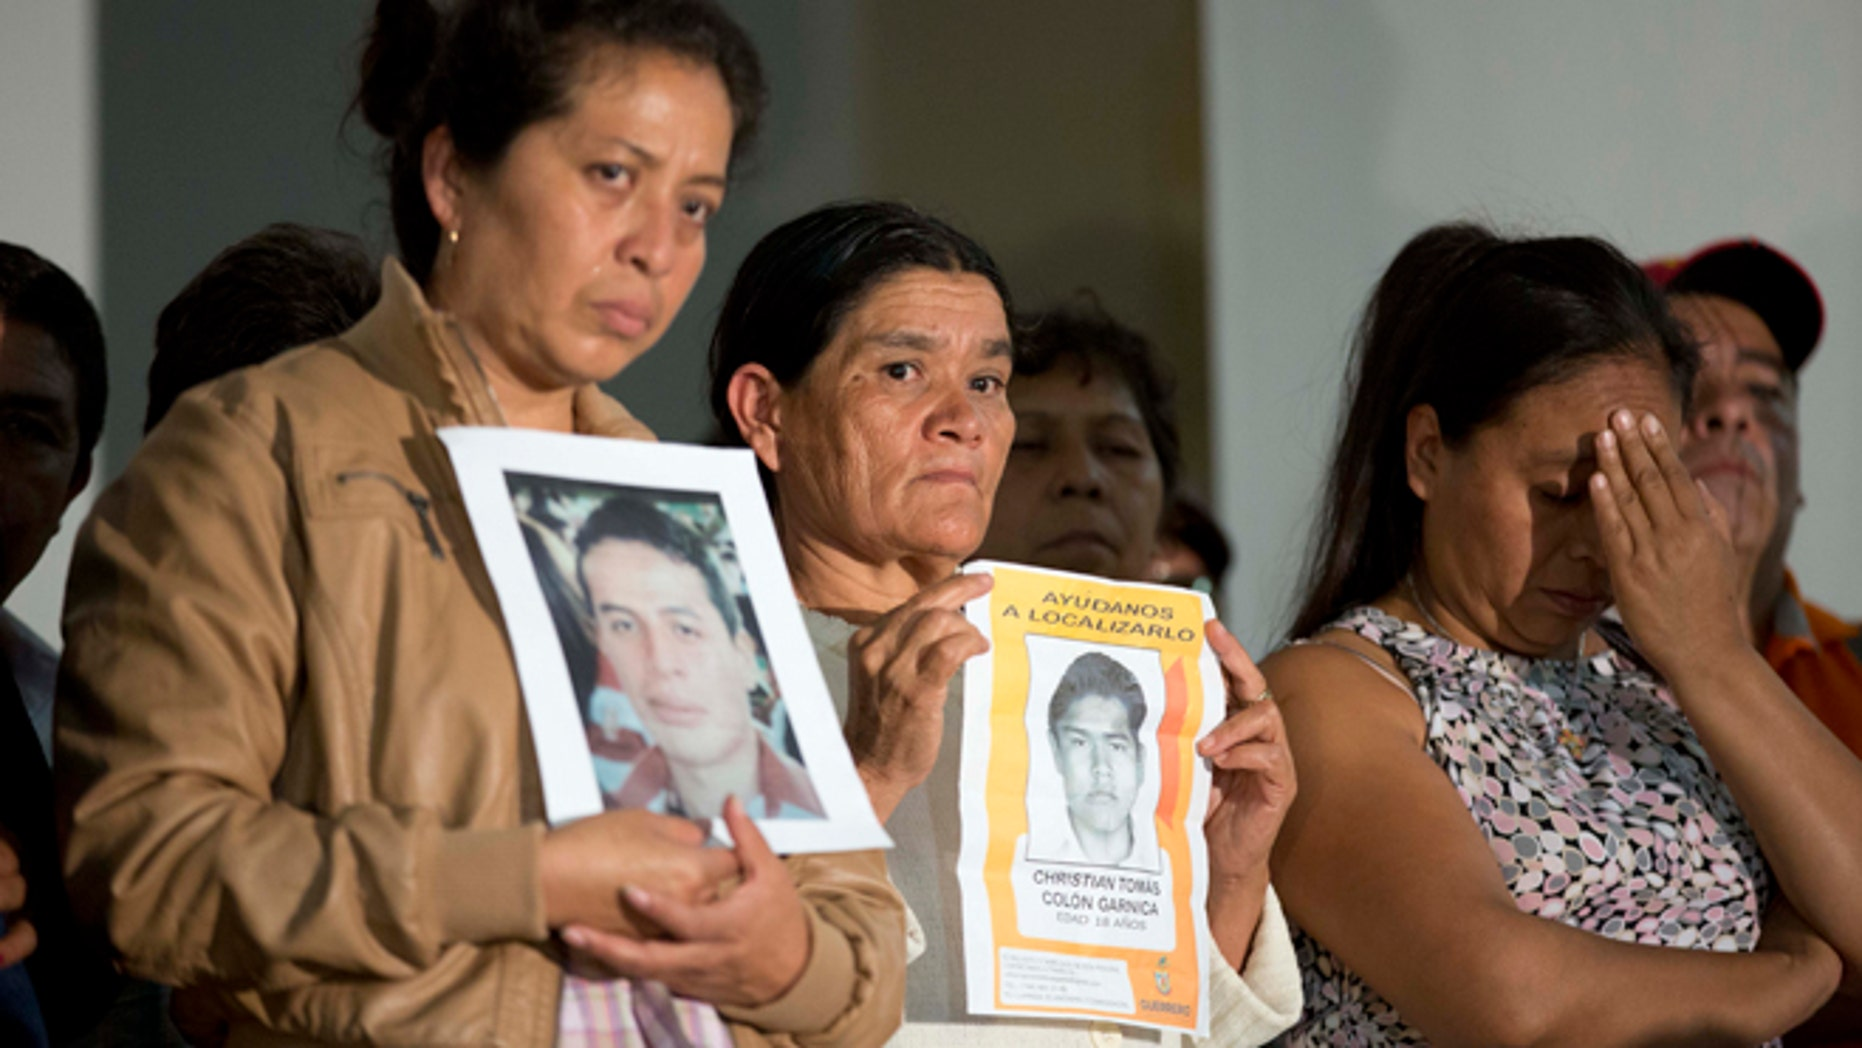 Parents of missing students holding pictures of the missing, attend the press conference after a meeting with Mexico's President Enrique Pena Nieto in  Mexico, City, Wednesday Oct. 29, 2014. President Enrique Pena Nieto met with parents of 43 teachers college students Wednesday for the first time since they disappeared over a month ago, when investigators say police detained the students and handed them over to a drug gang. (AP Photo/Eduardo Verdugo)